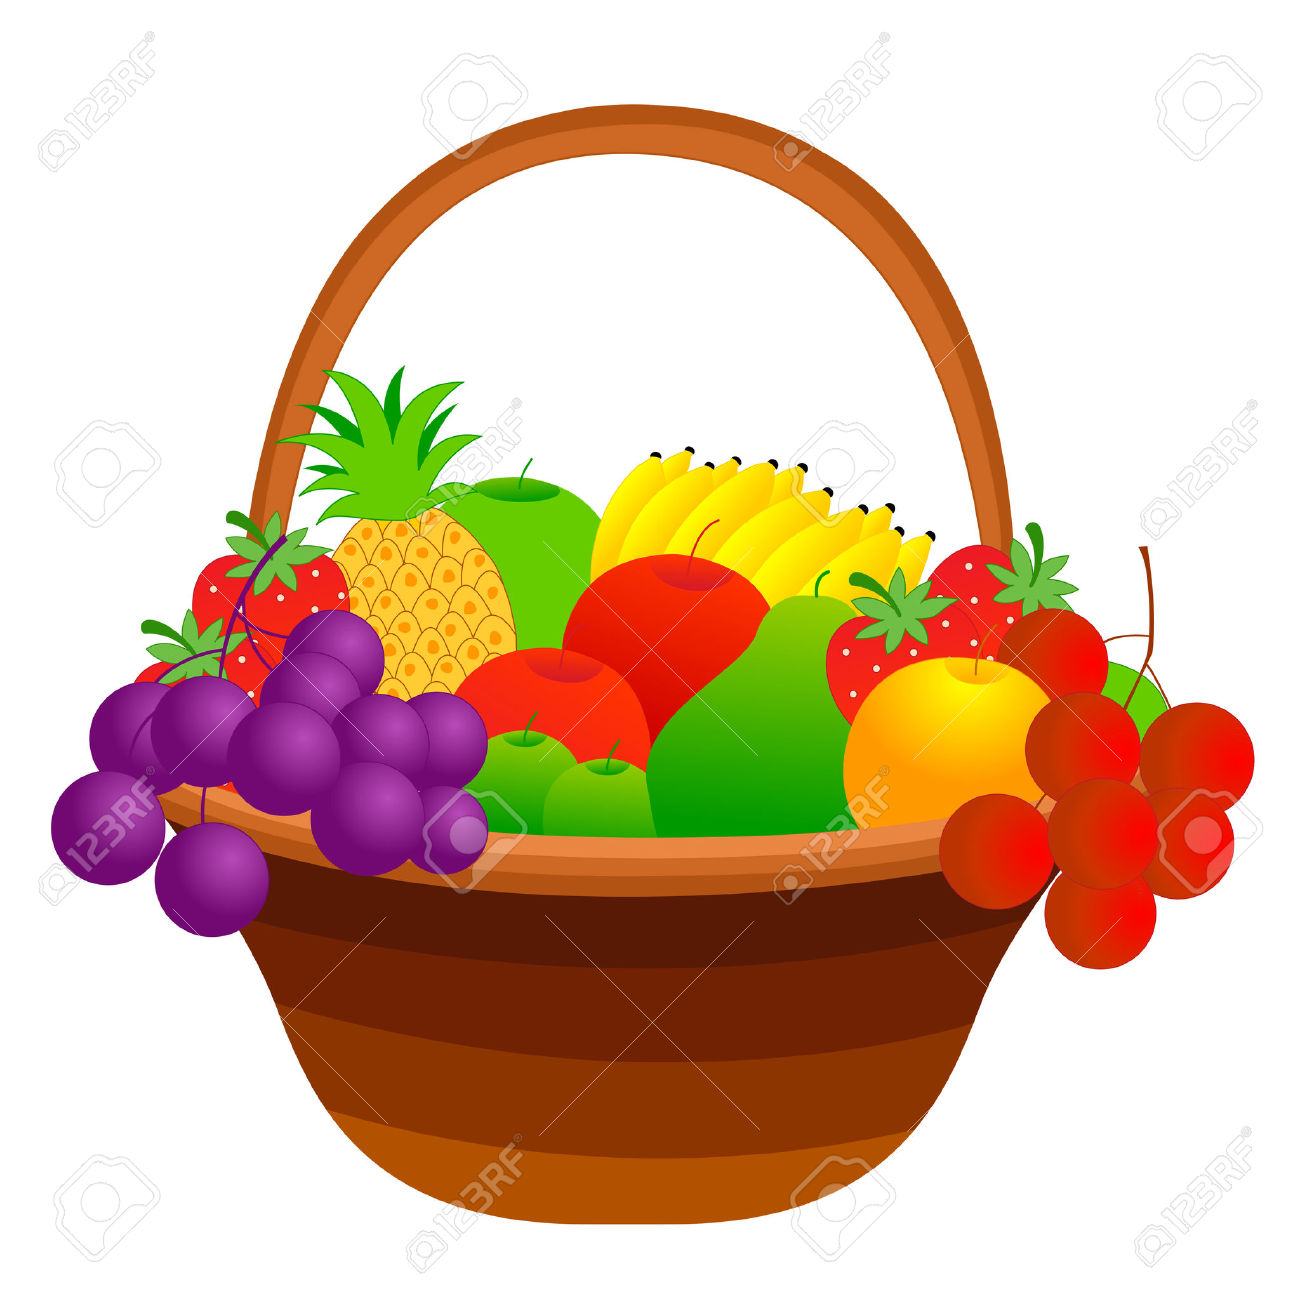 Illustration Of A Fruit Basket With Mixed Fruits Including Apple.